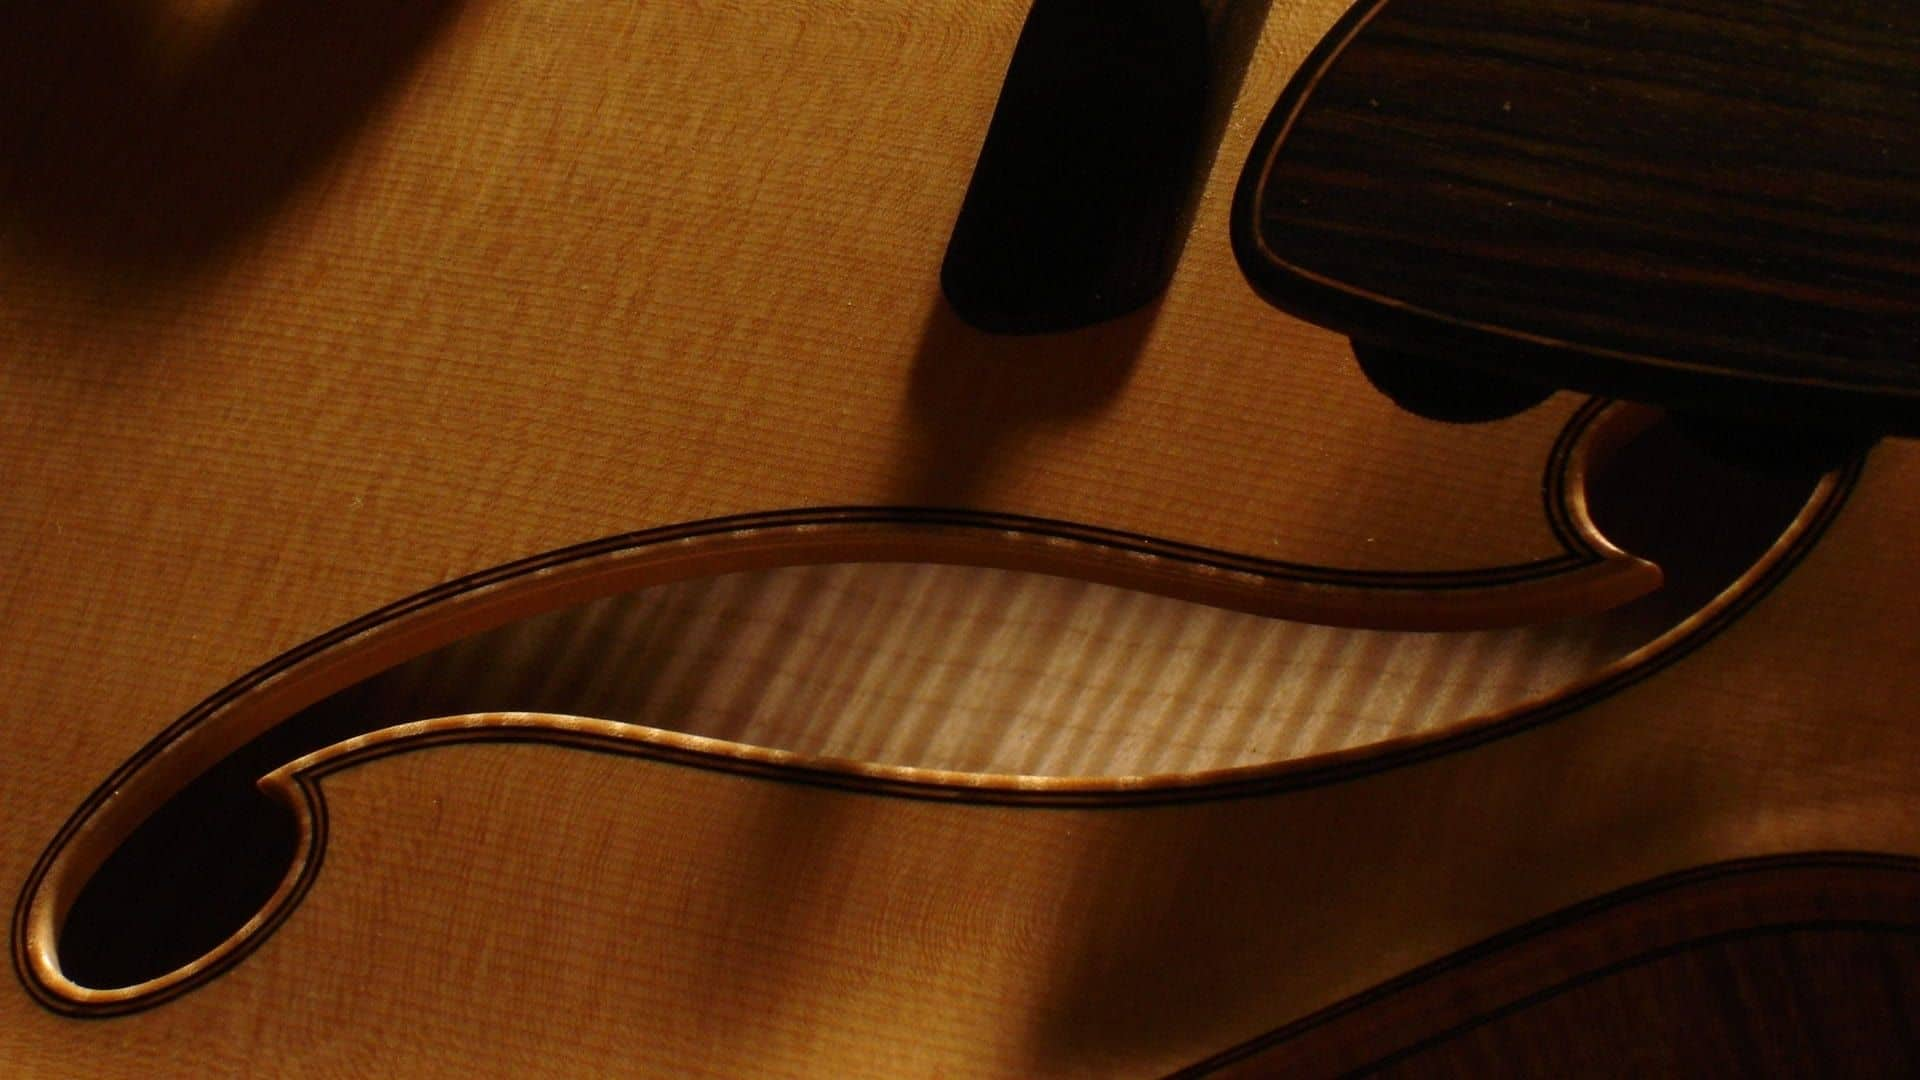 Sealing Inside Archtop Guitar